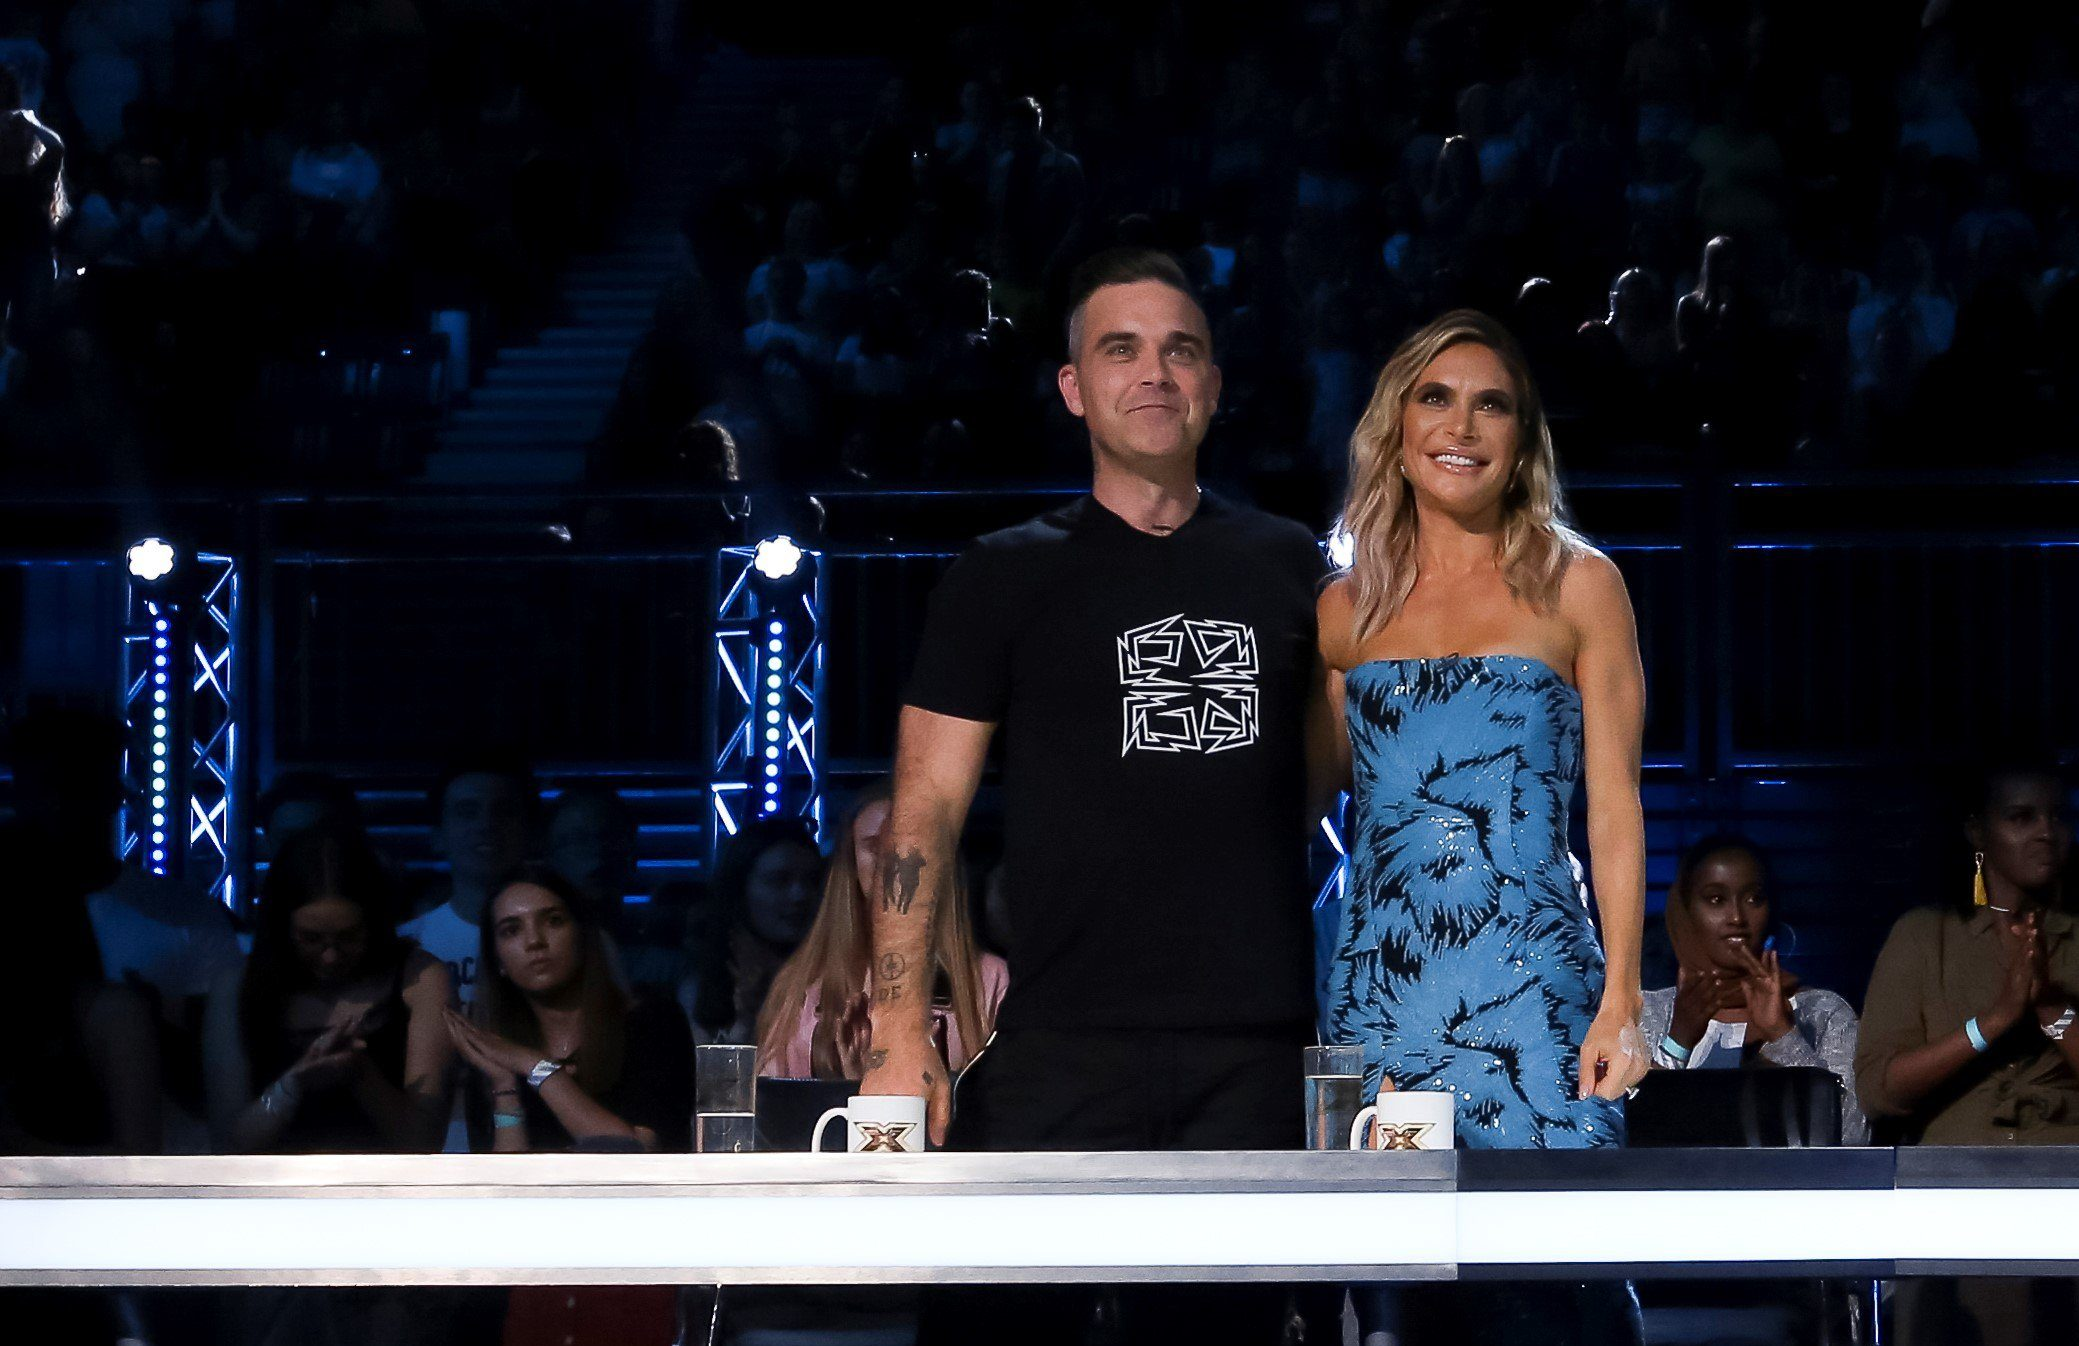 The X Factor 'trying to fit auditions around Robbie Williams' Las Vegas residency so he doesn't miss shows'